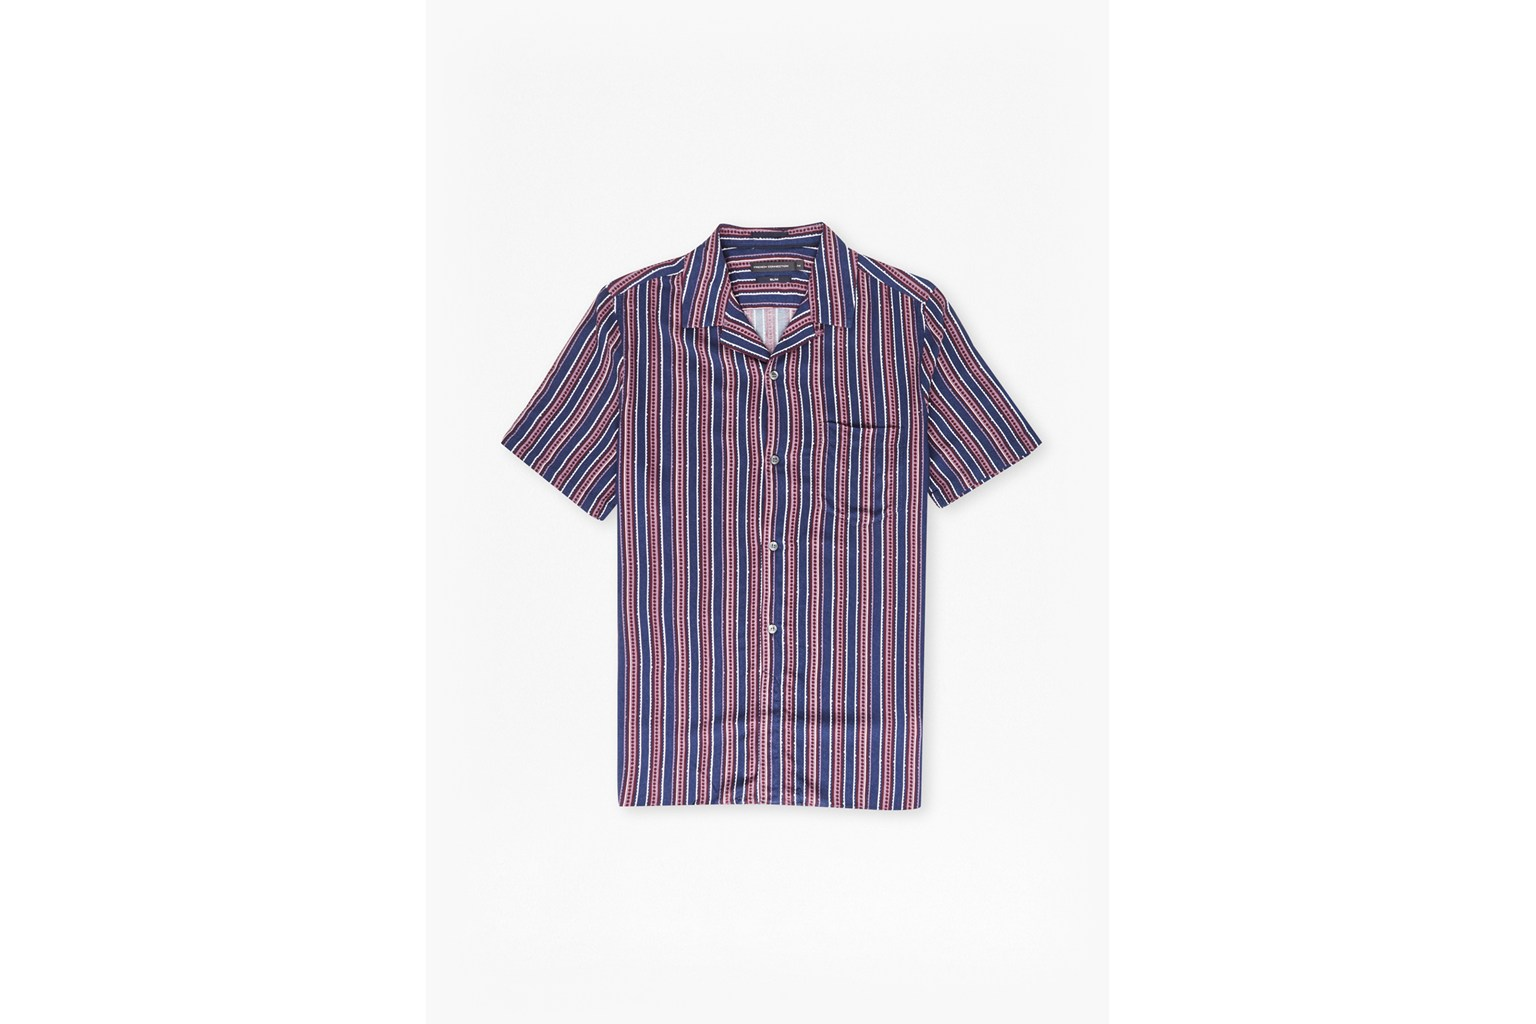 Kaha Viscose Cuban Collar Shirt